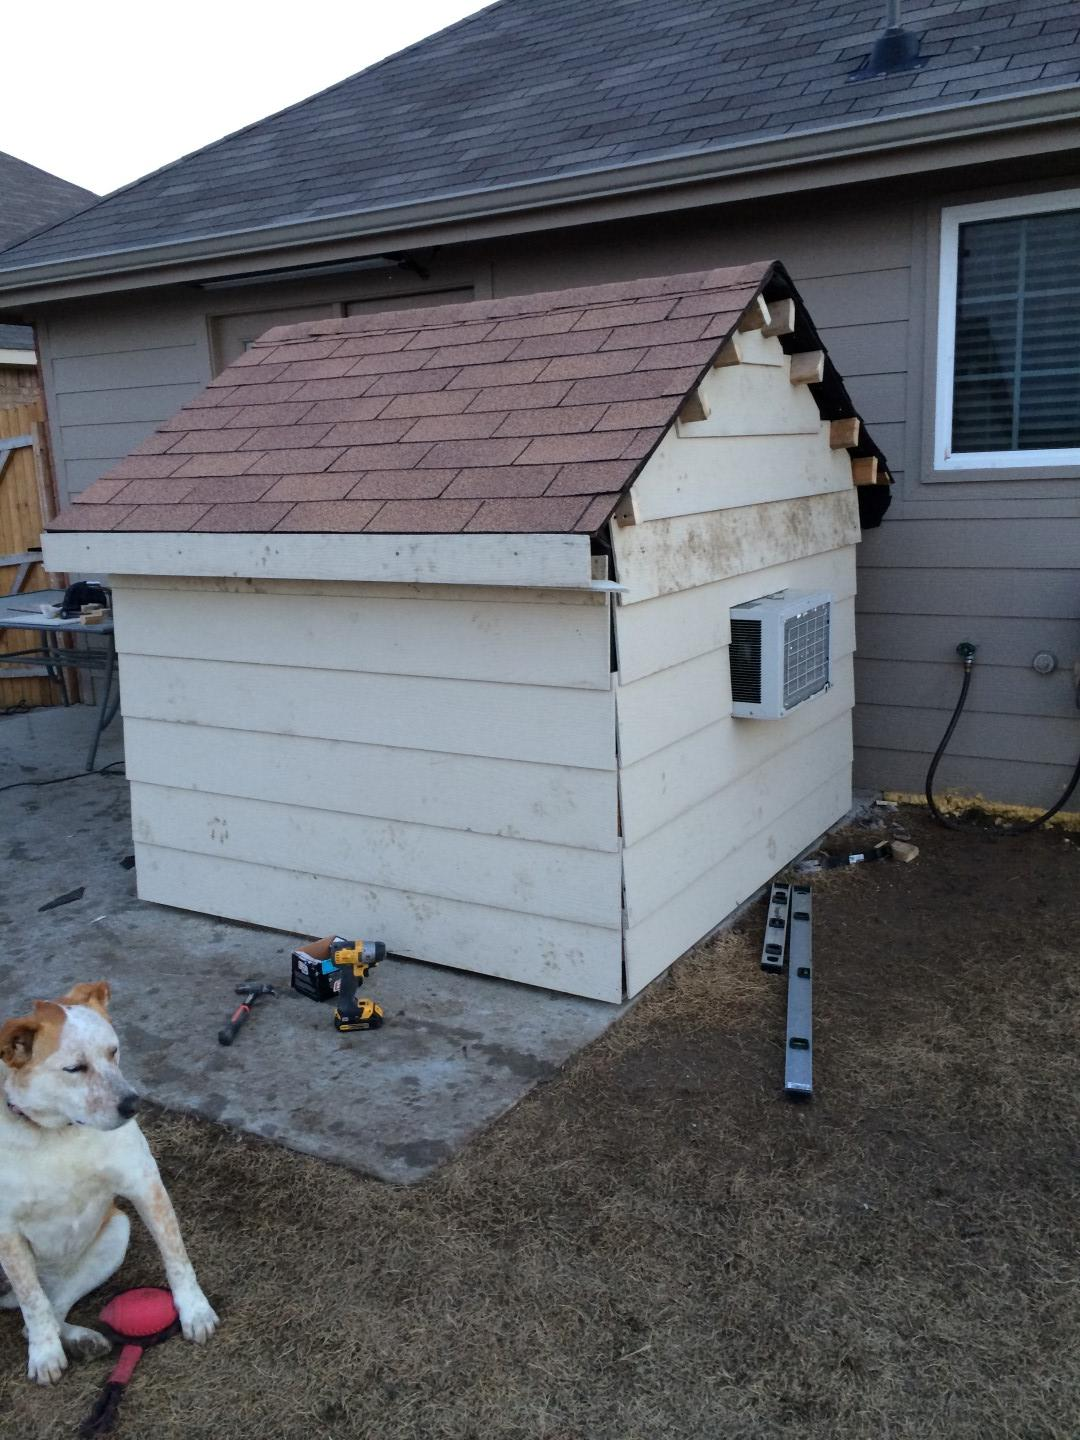 I Built My Two Dogs A Doghouse Equipped With An Air Conditioner For Only $400